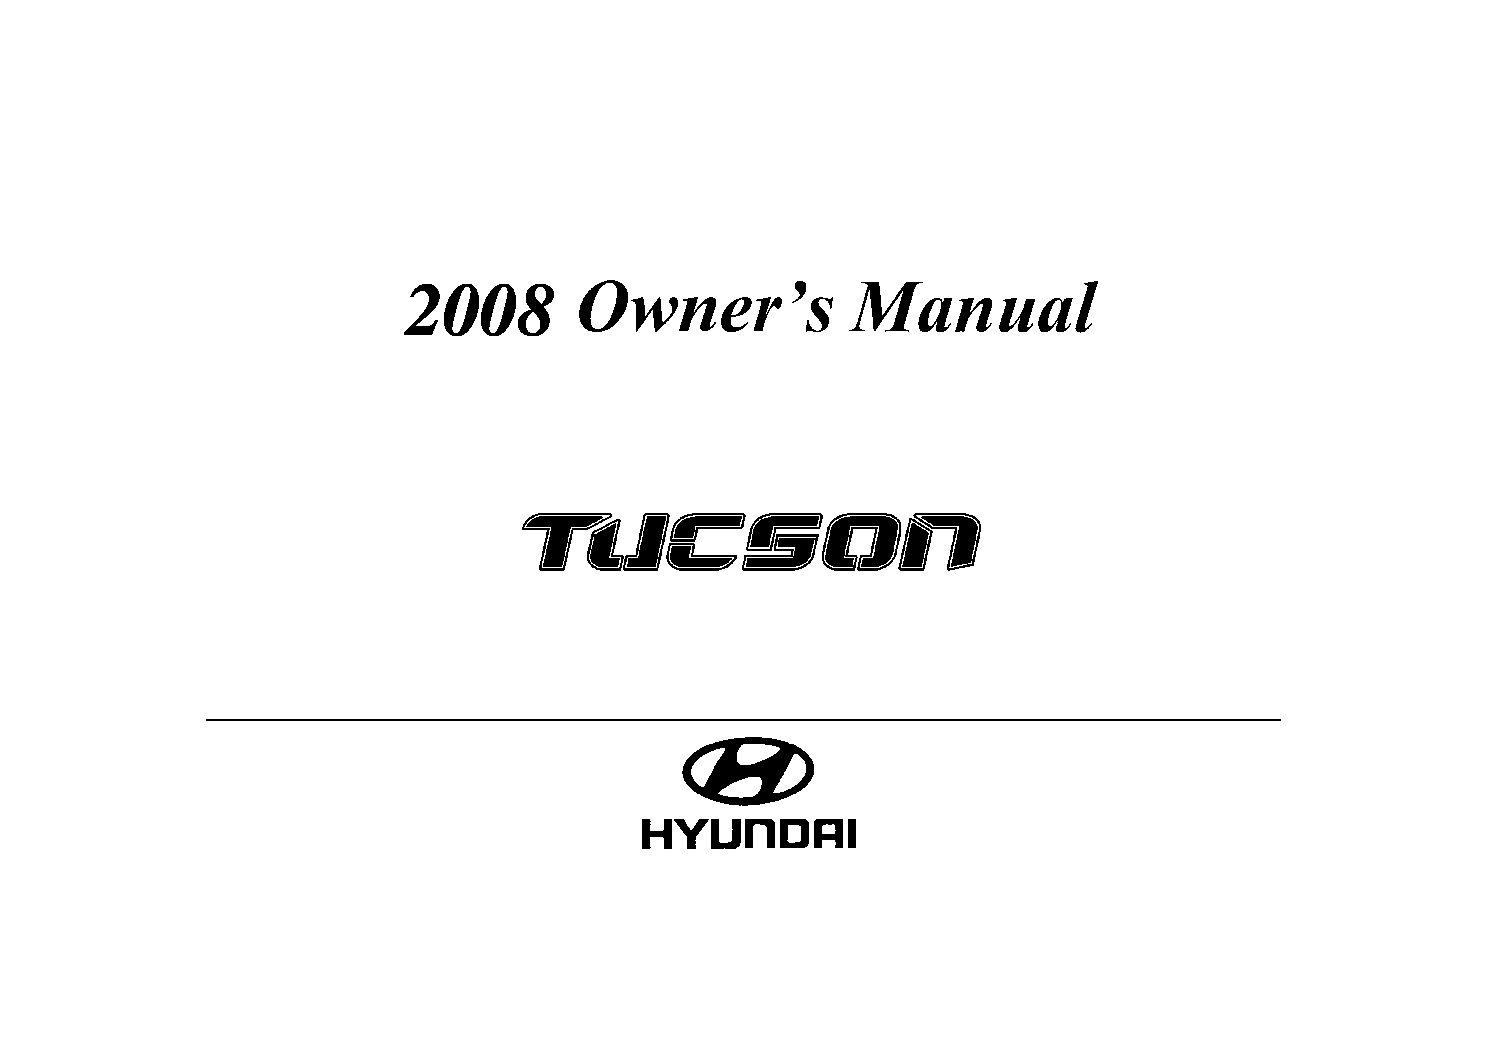 2008 Hyundai Tucson Repair Manual Pdf